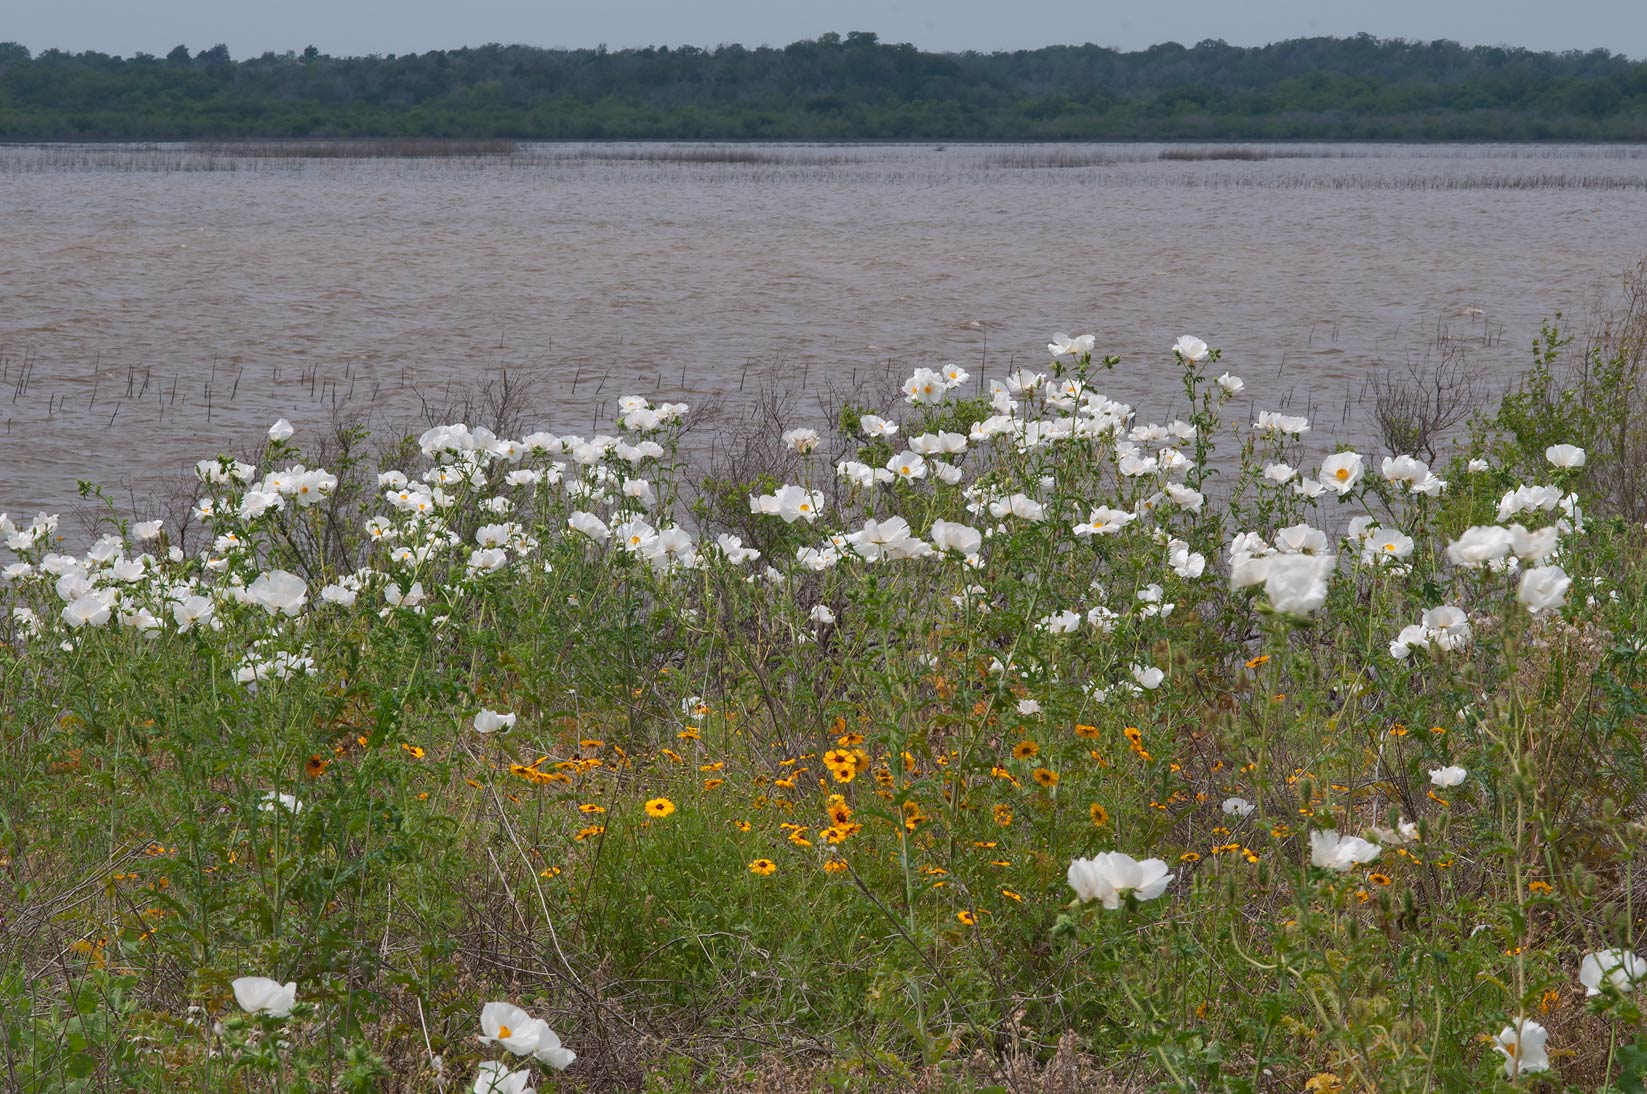 White prickly poppy on shores of the lake in...of Lake Somerville State Park, Texas